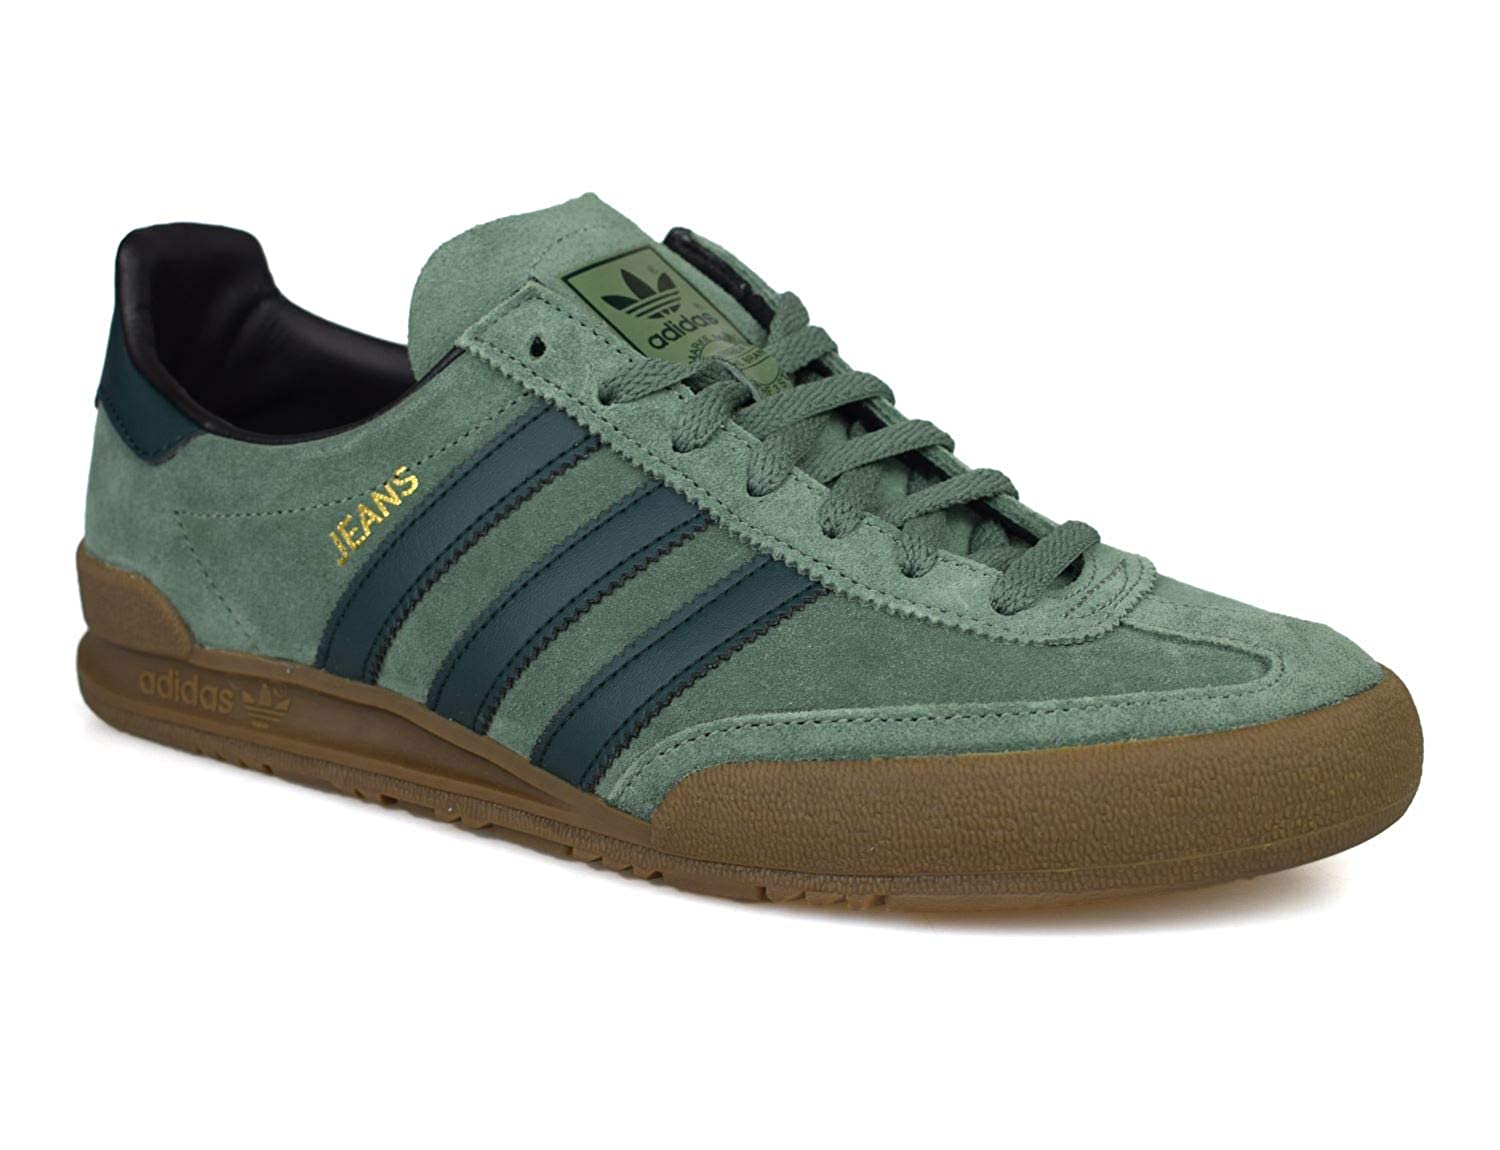 promo code 199b6 e6755 adidas Jeans, Men s Trainers  Amazon.co.uk  Shoes   Bags